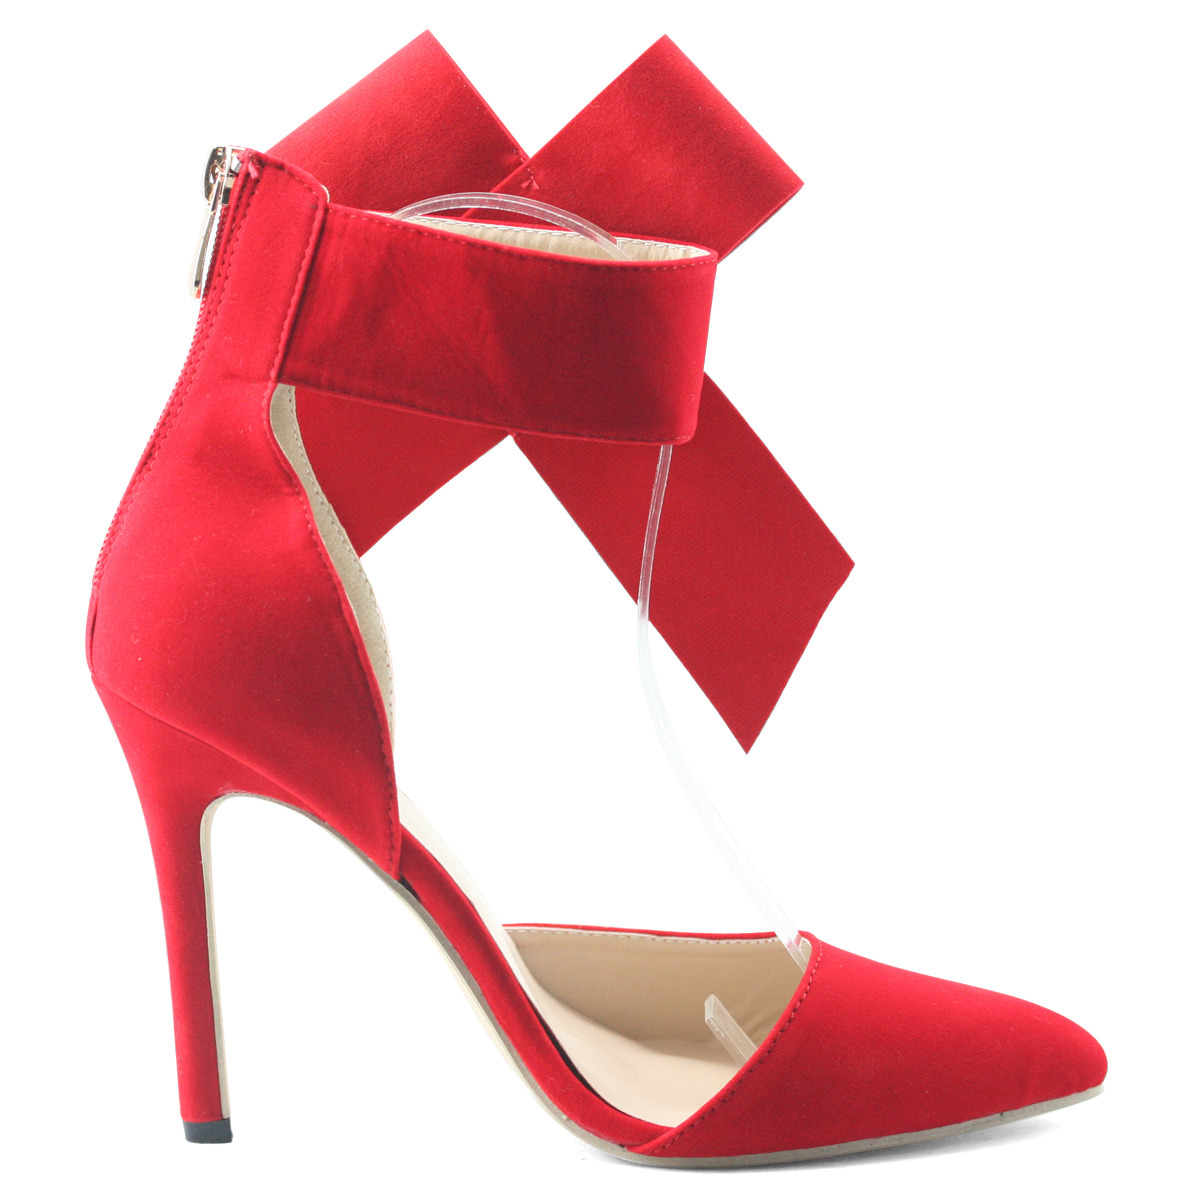 Sexy-womens-red-shoes-pointy-toe-ankle-bow-high-heels-stiletto-wedding